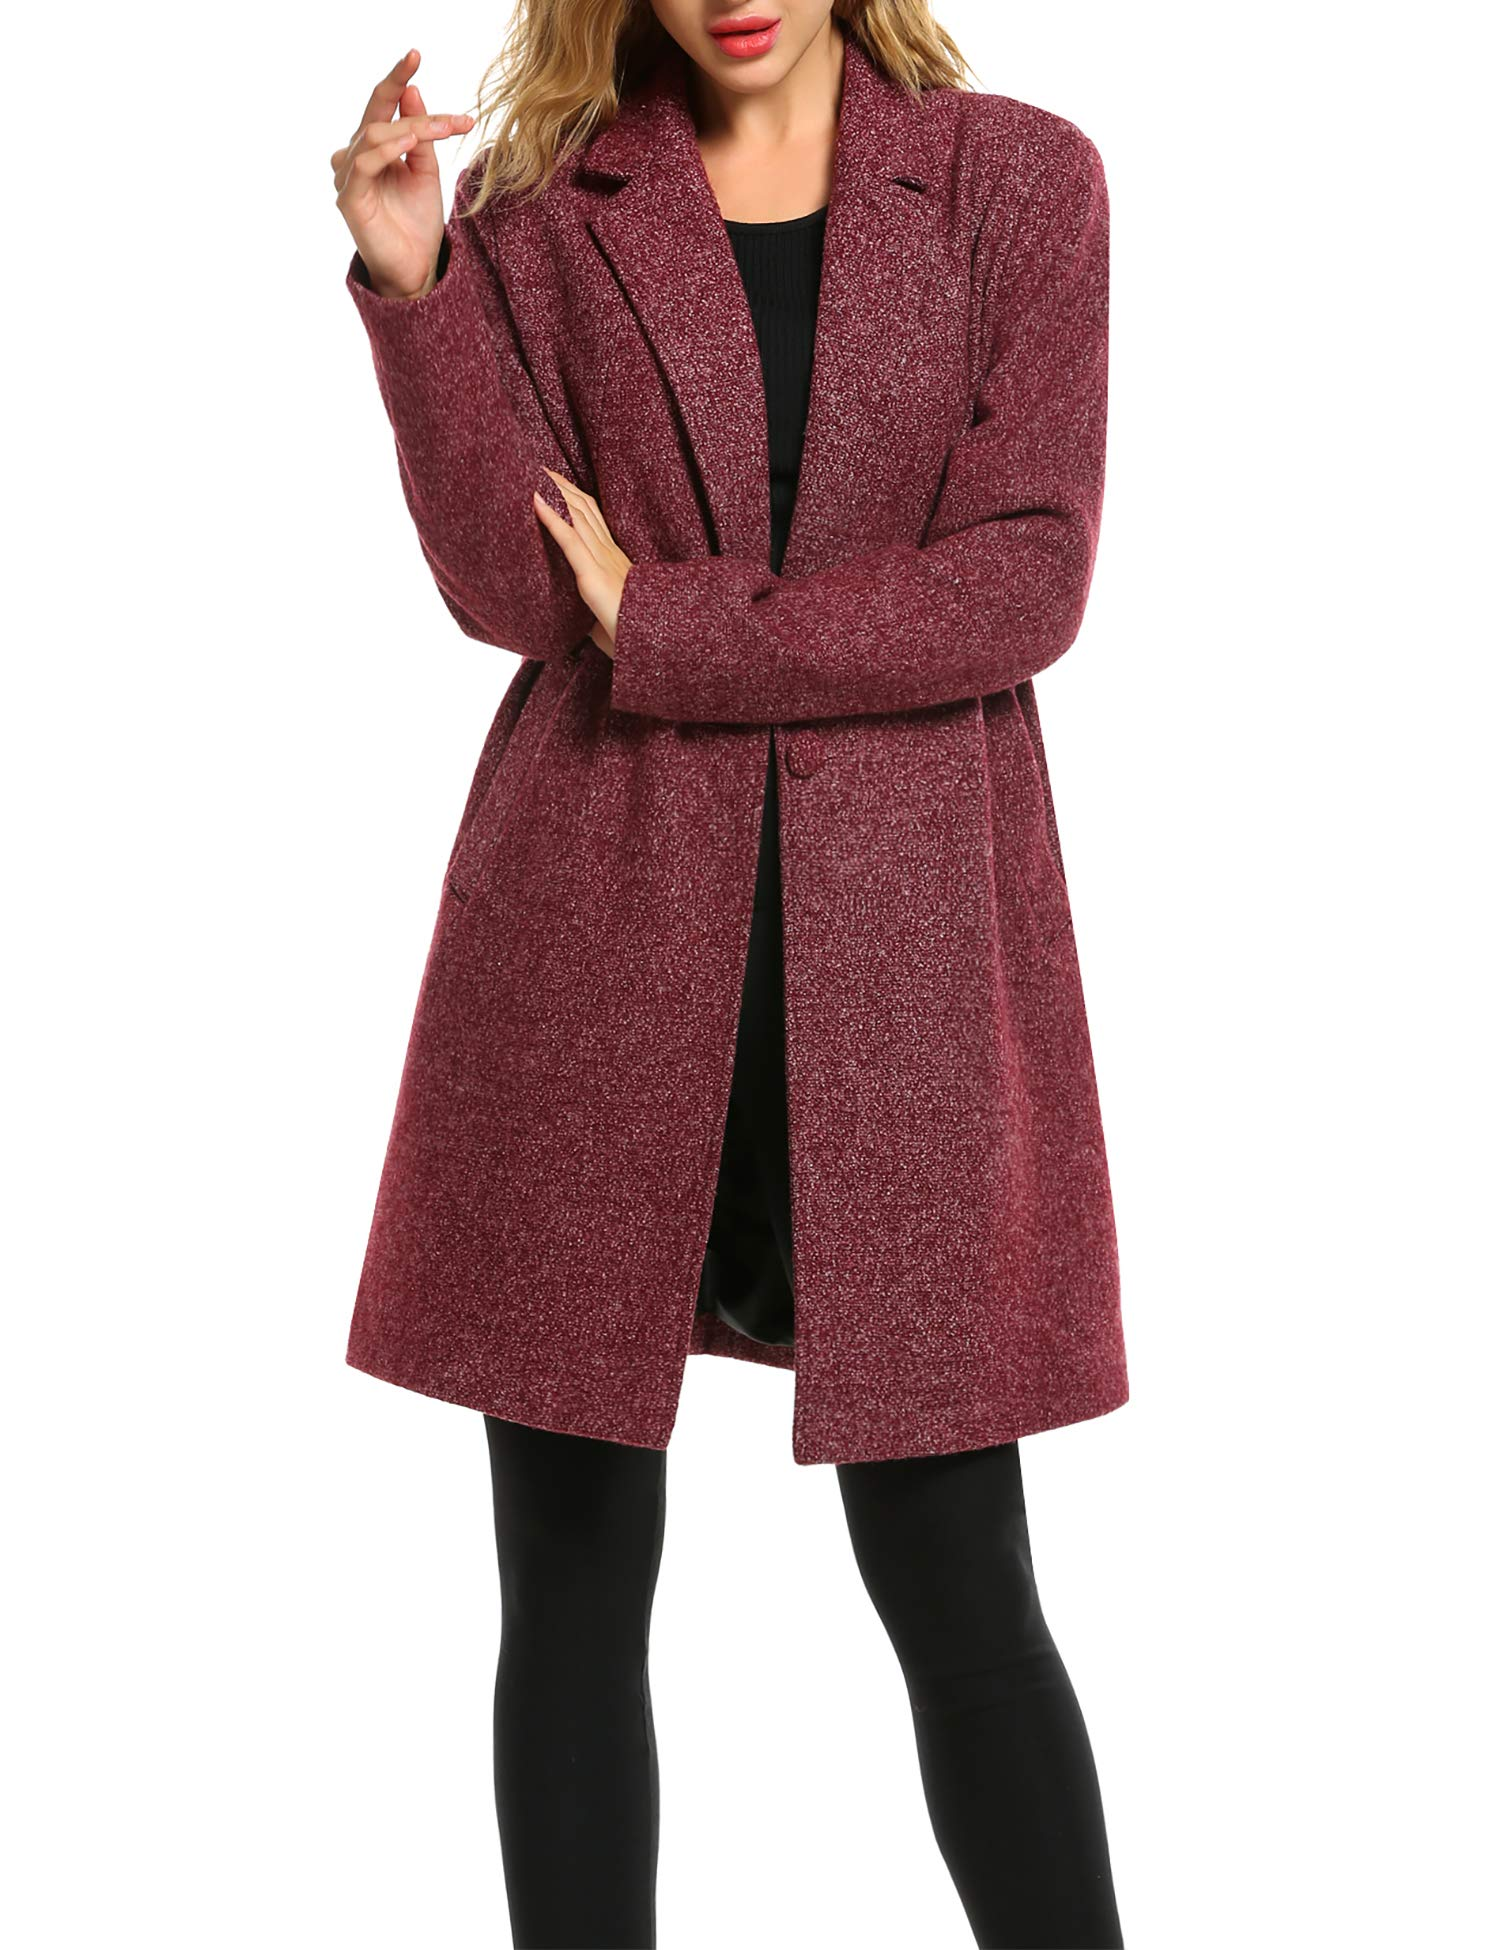 Zeagoo Fashion Woll Trenched Coats Women Casual Long Trench Coat Single Breasted Wool Jacket Lightweight Cardigan Winter Outwear Work (Small,Red)